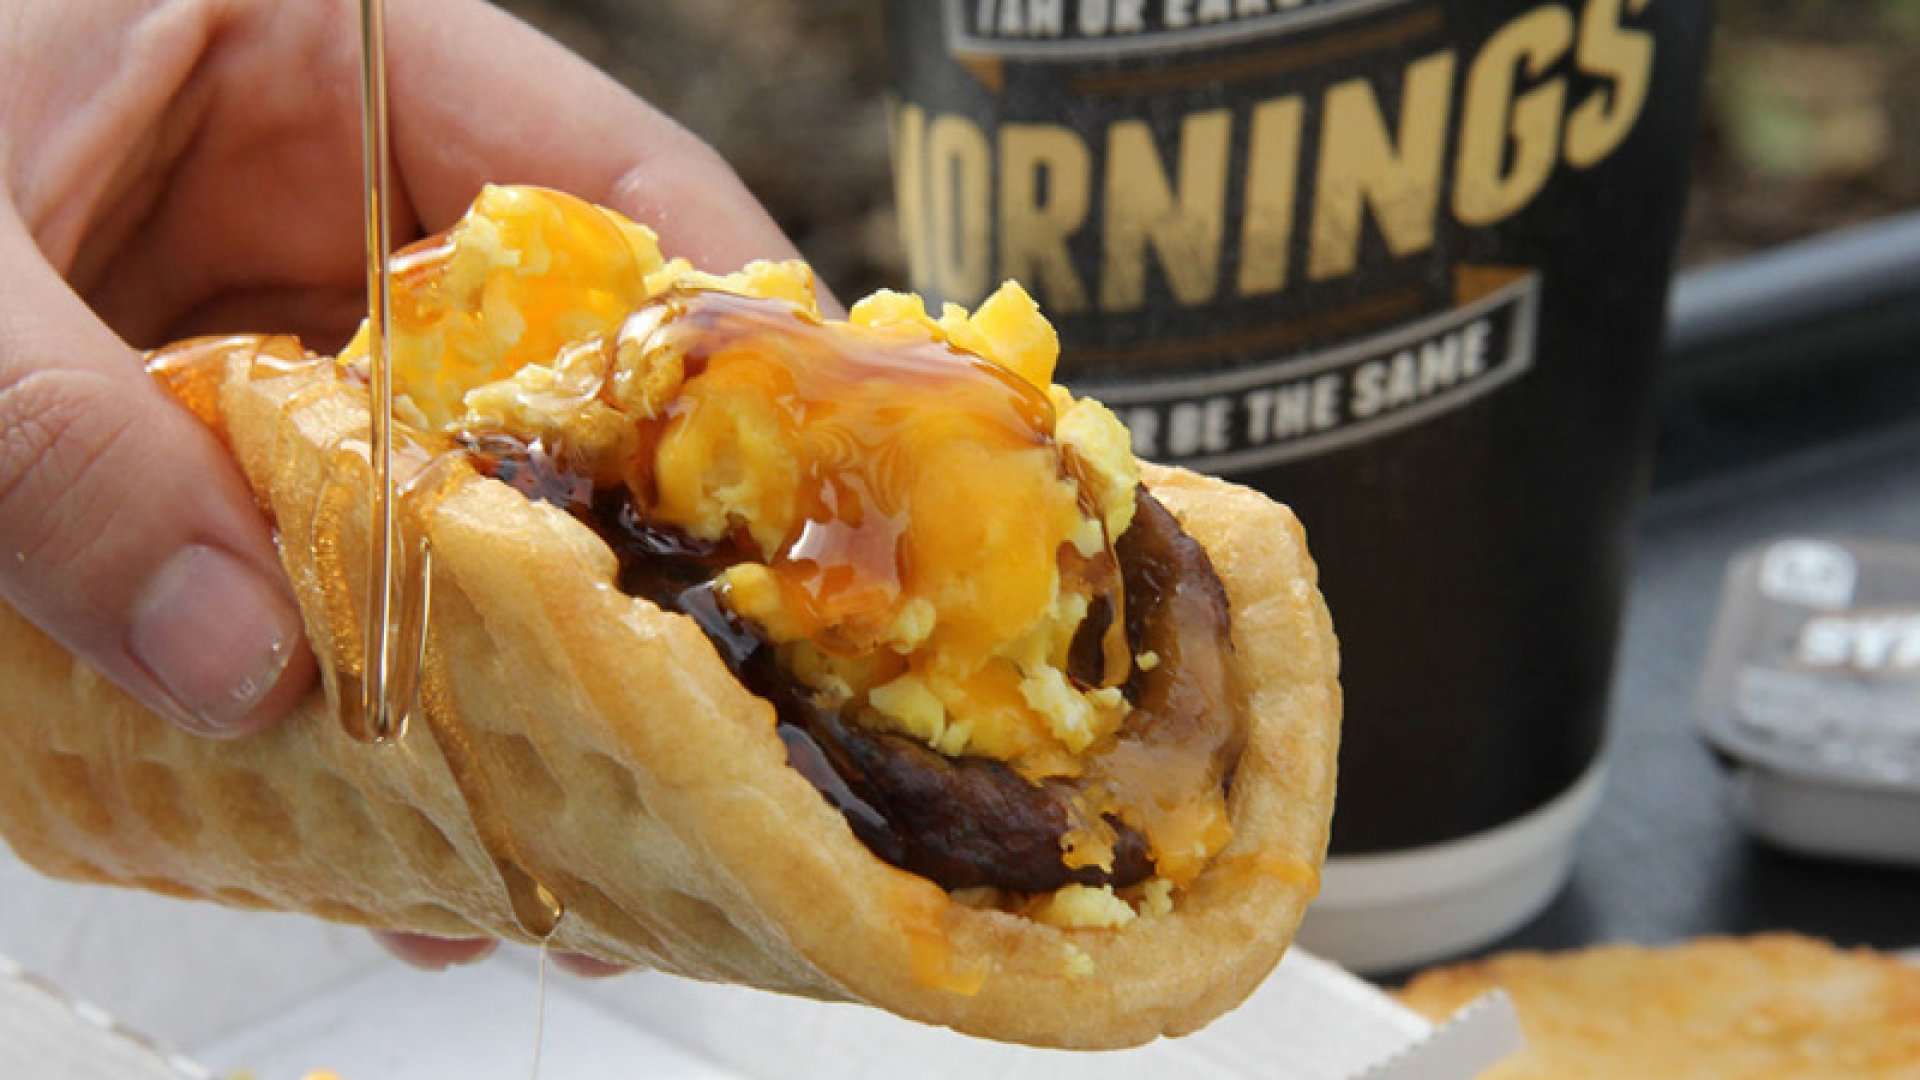 Disgusted by Taco Bell's Waffle Taco? Blame Entrepreneurs